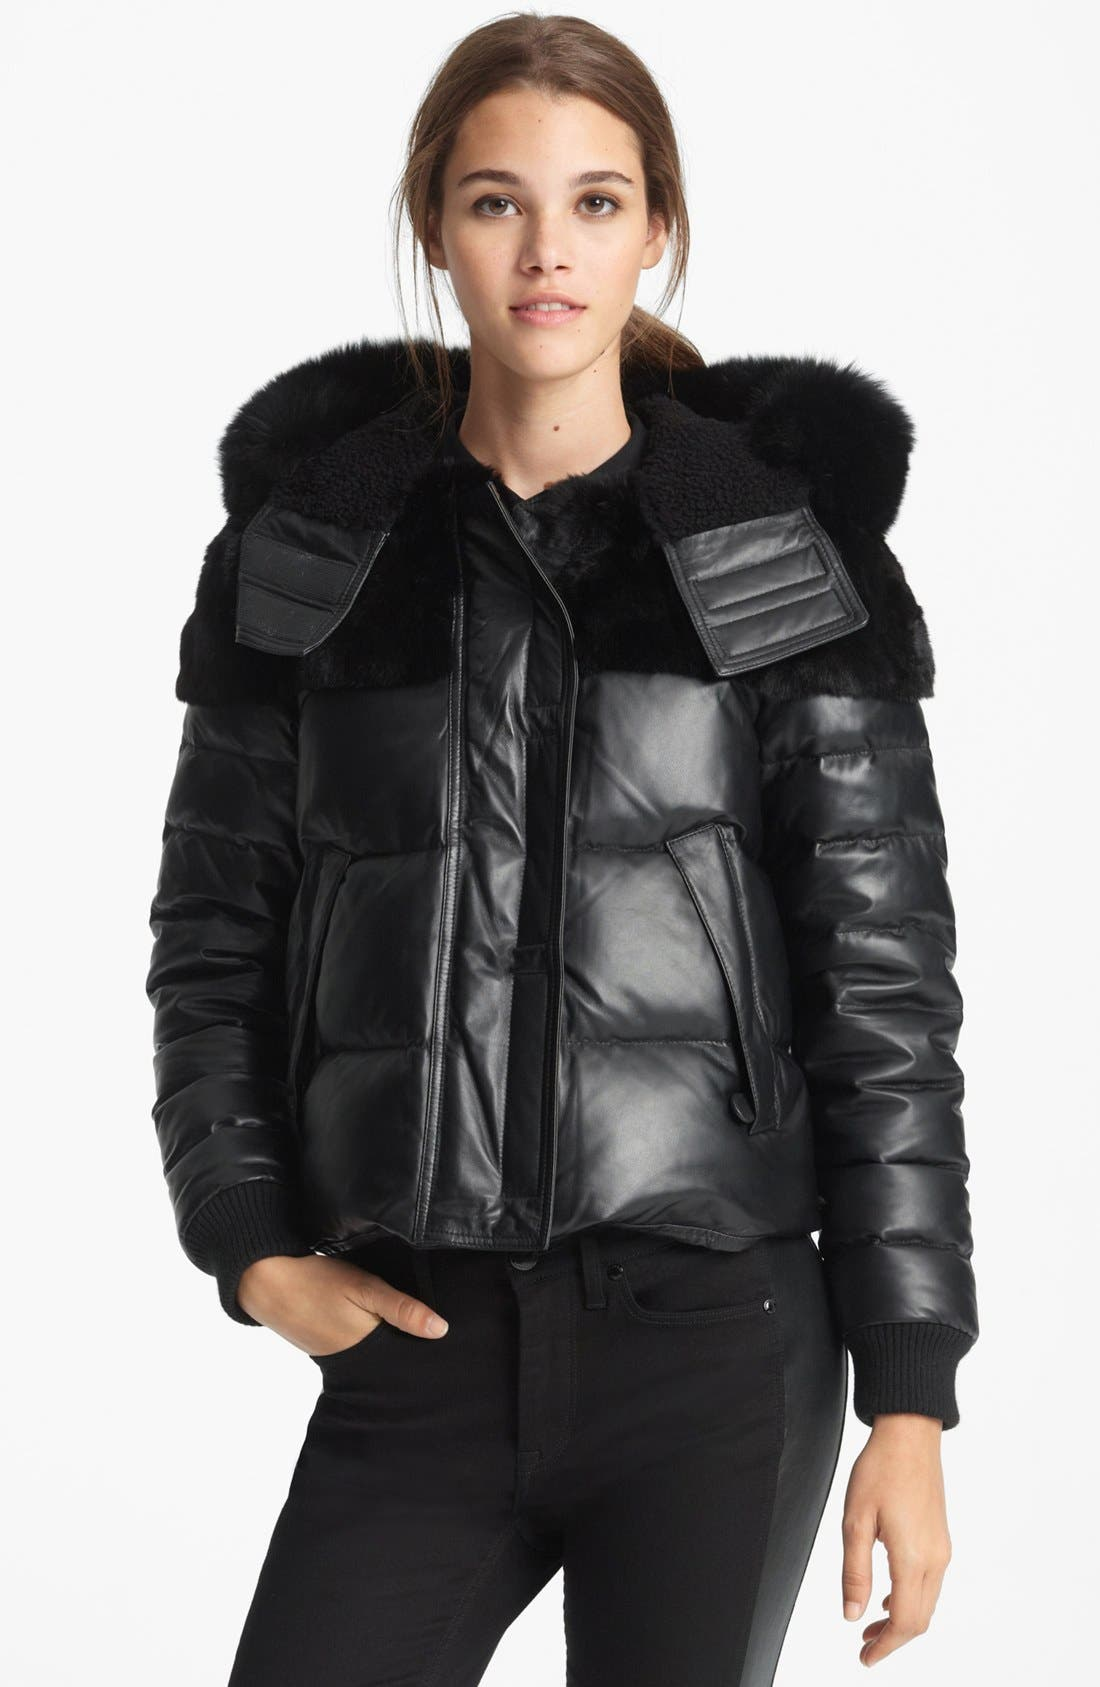 Main Image - Burberry Brit 'Arnsfield' Quilted Leather Jacket with Genuine Mix Fur Trim